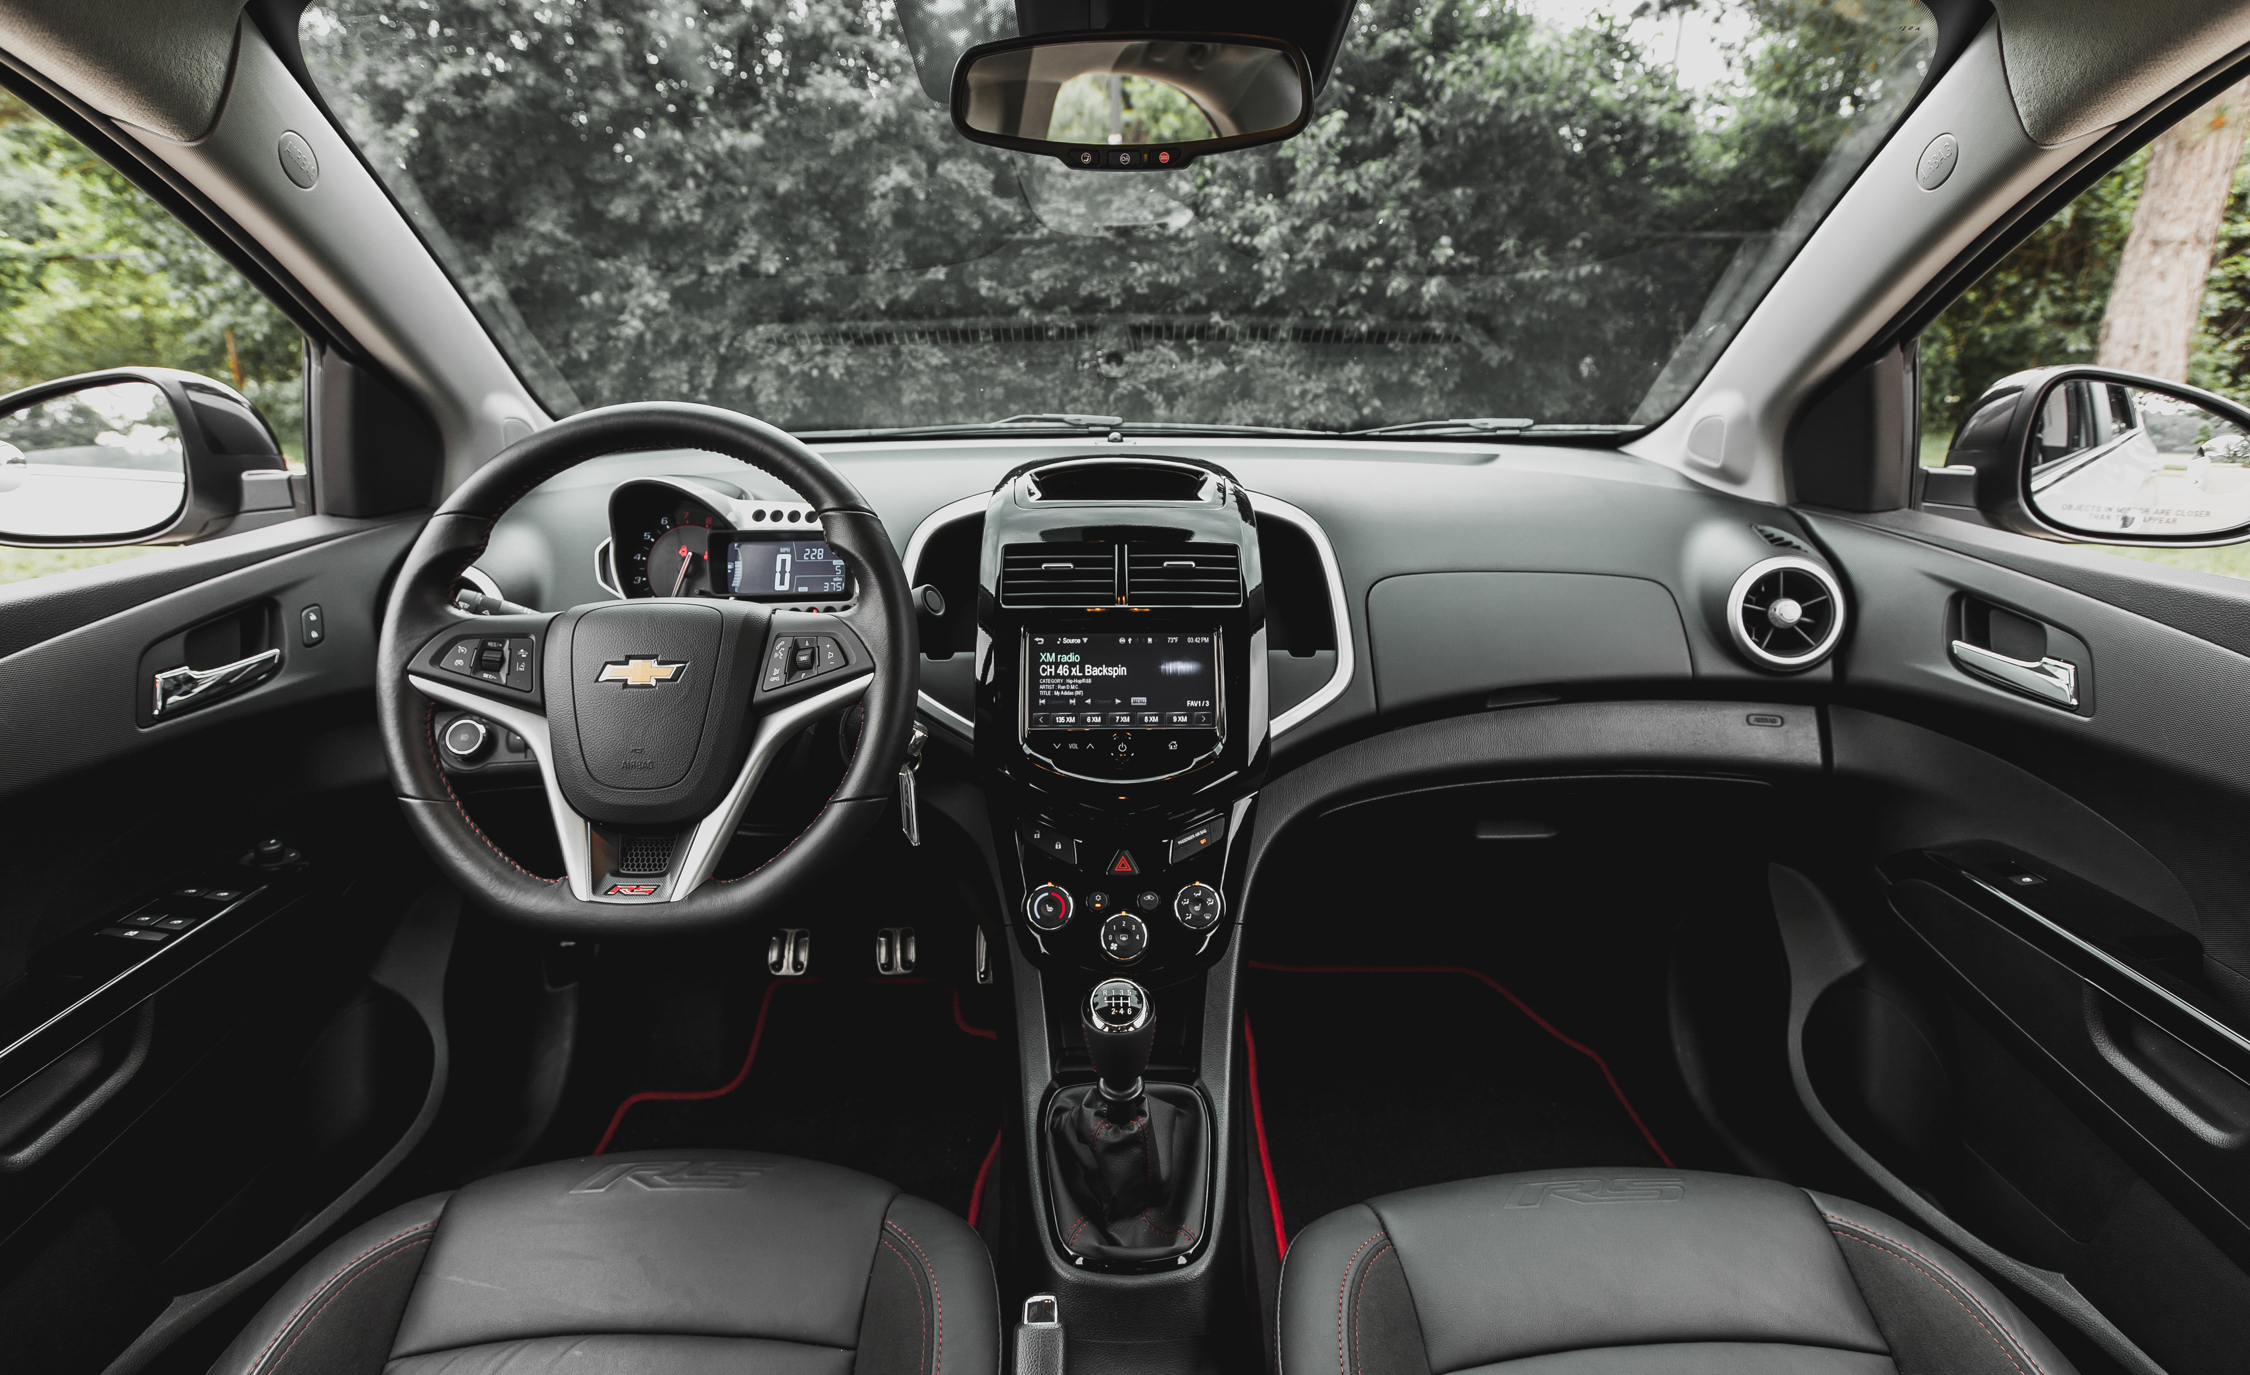 2014 Chevrolet Sonic RS Sedan Interior (Photo 26 of 27)